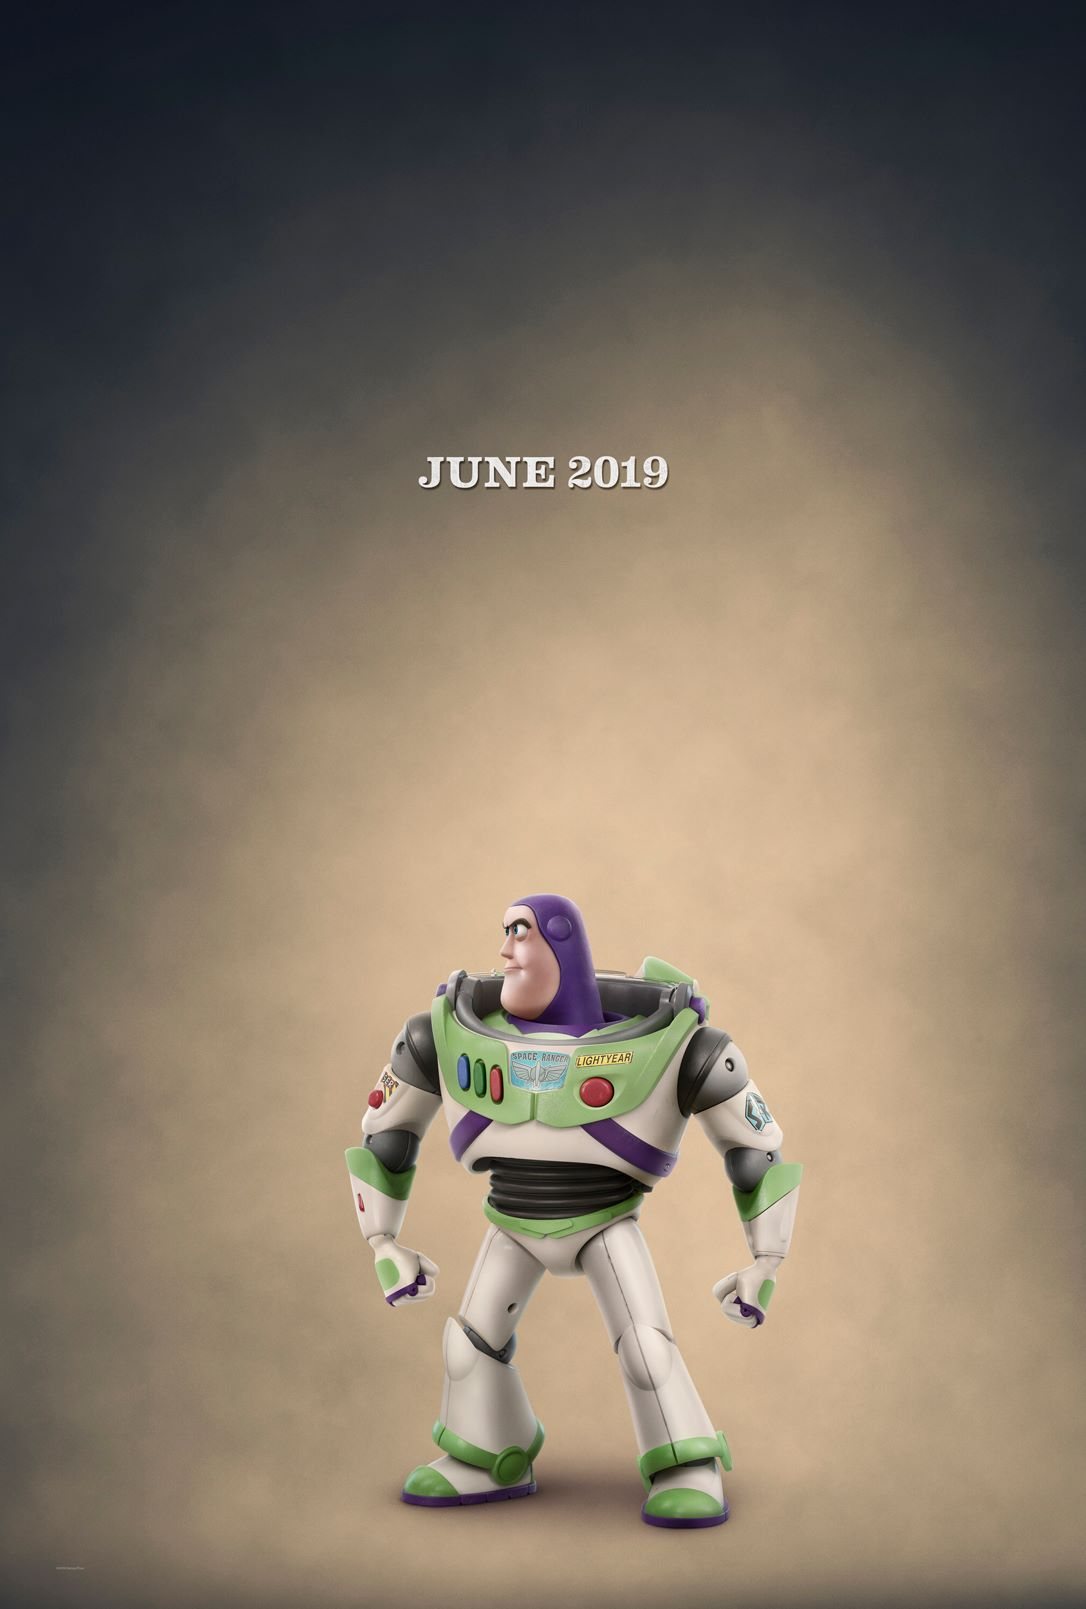 toy-story-4-buzz-lightyear-junio-2019